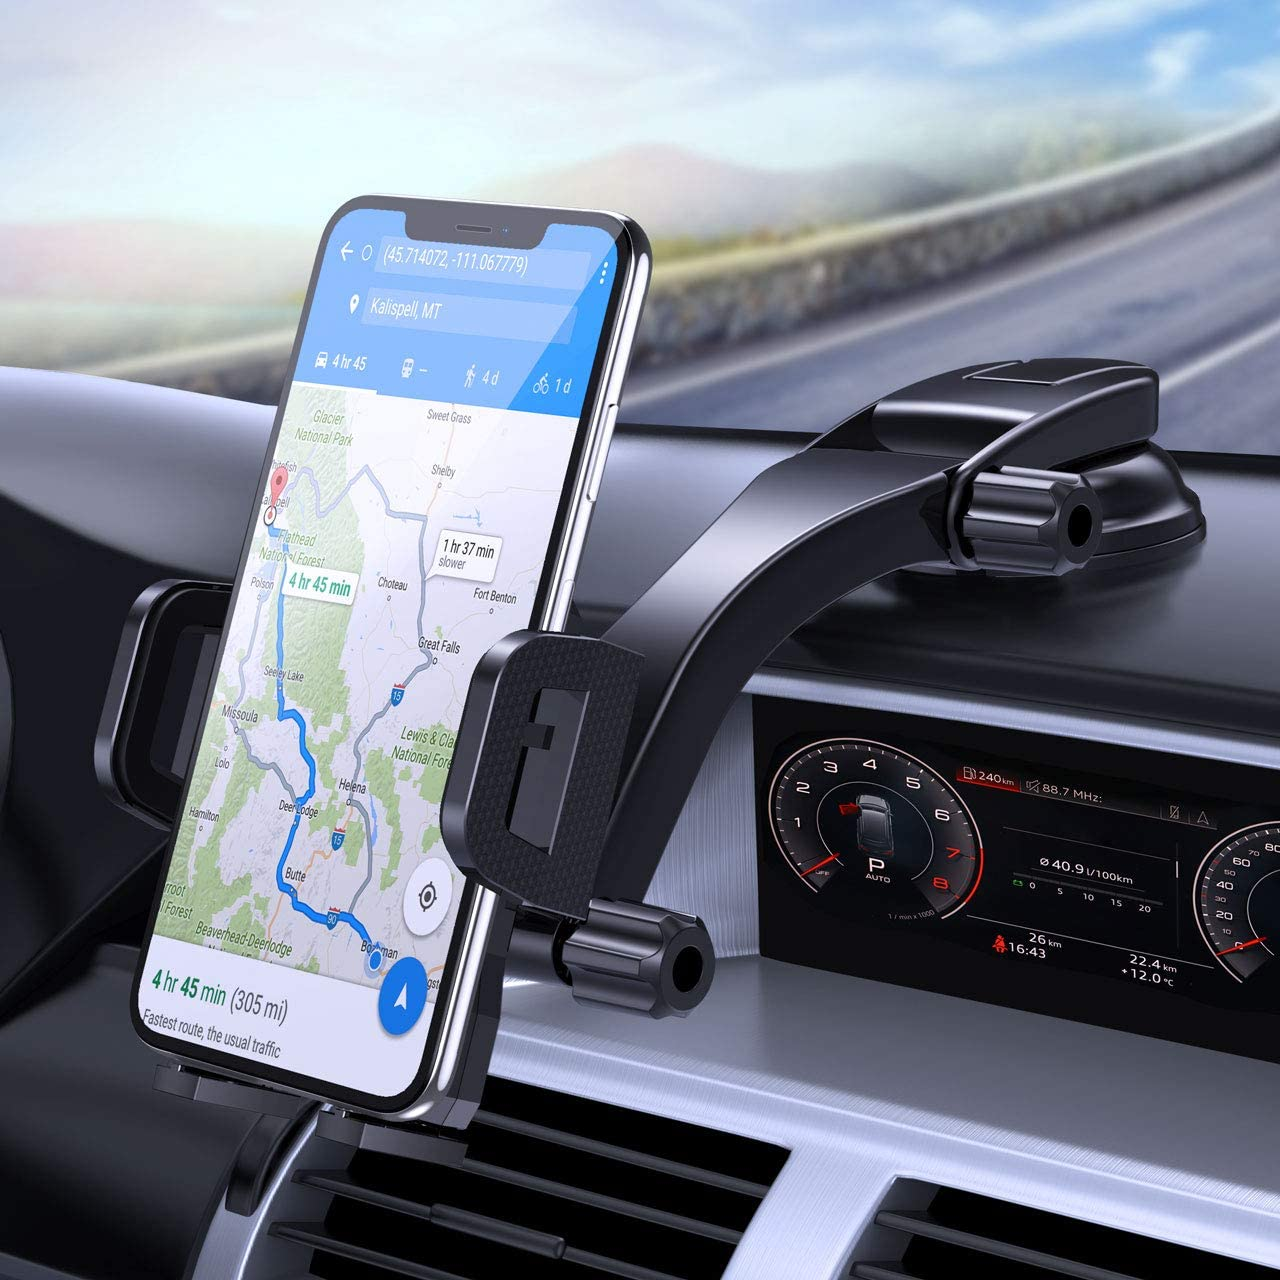 Car Phone Mount, Dashboard Windshield Car Phone Holder No Obstruction View & Strong Sticky Gel Suction Cup, Compatible iPhone 11/11 pro/XS MAX/XS/XR/X/8plus/7/8/6 Galaxy S10/S9/S8,Google etc